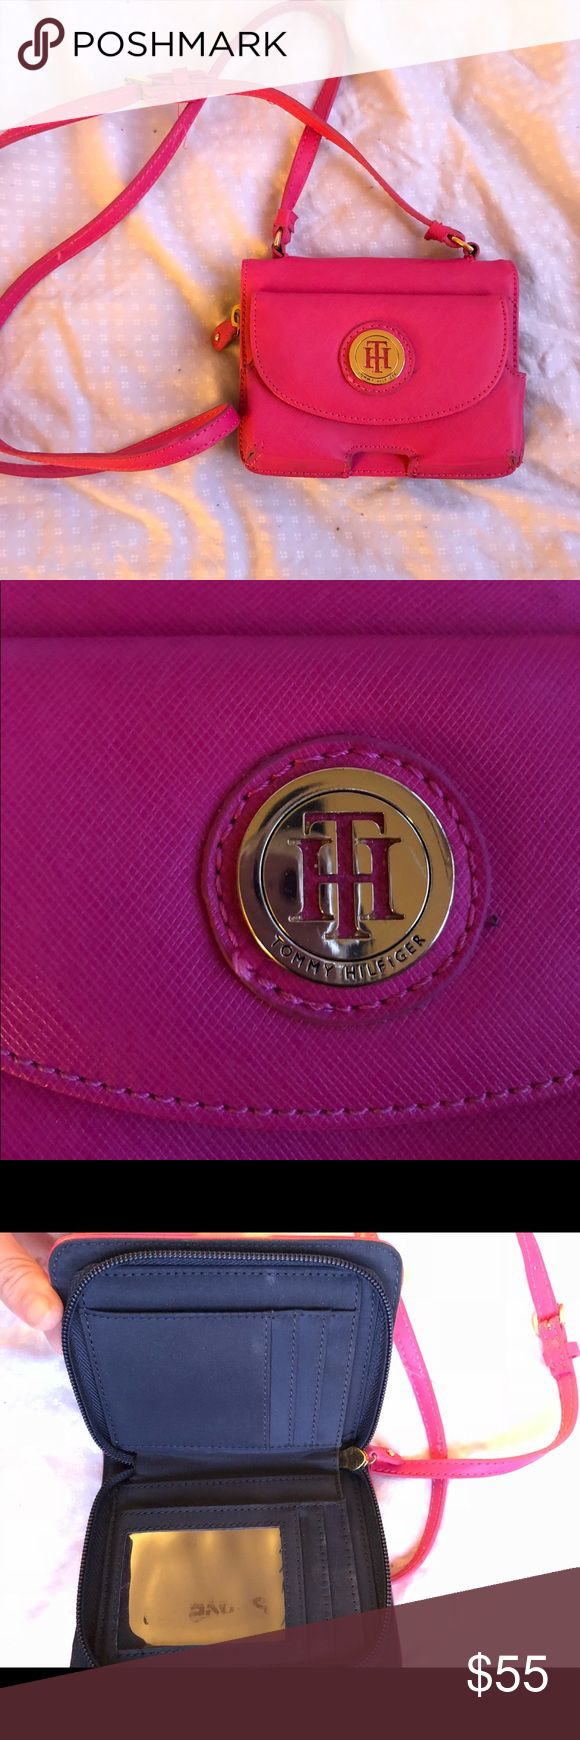 Tommy Hilfiger pink clutch bag Tommy Hilfiger pink clutch bag. In great condition and has fold-over for credit cards and cash Tommy Hilfiger Bags Mini Bags